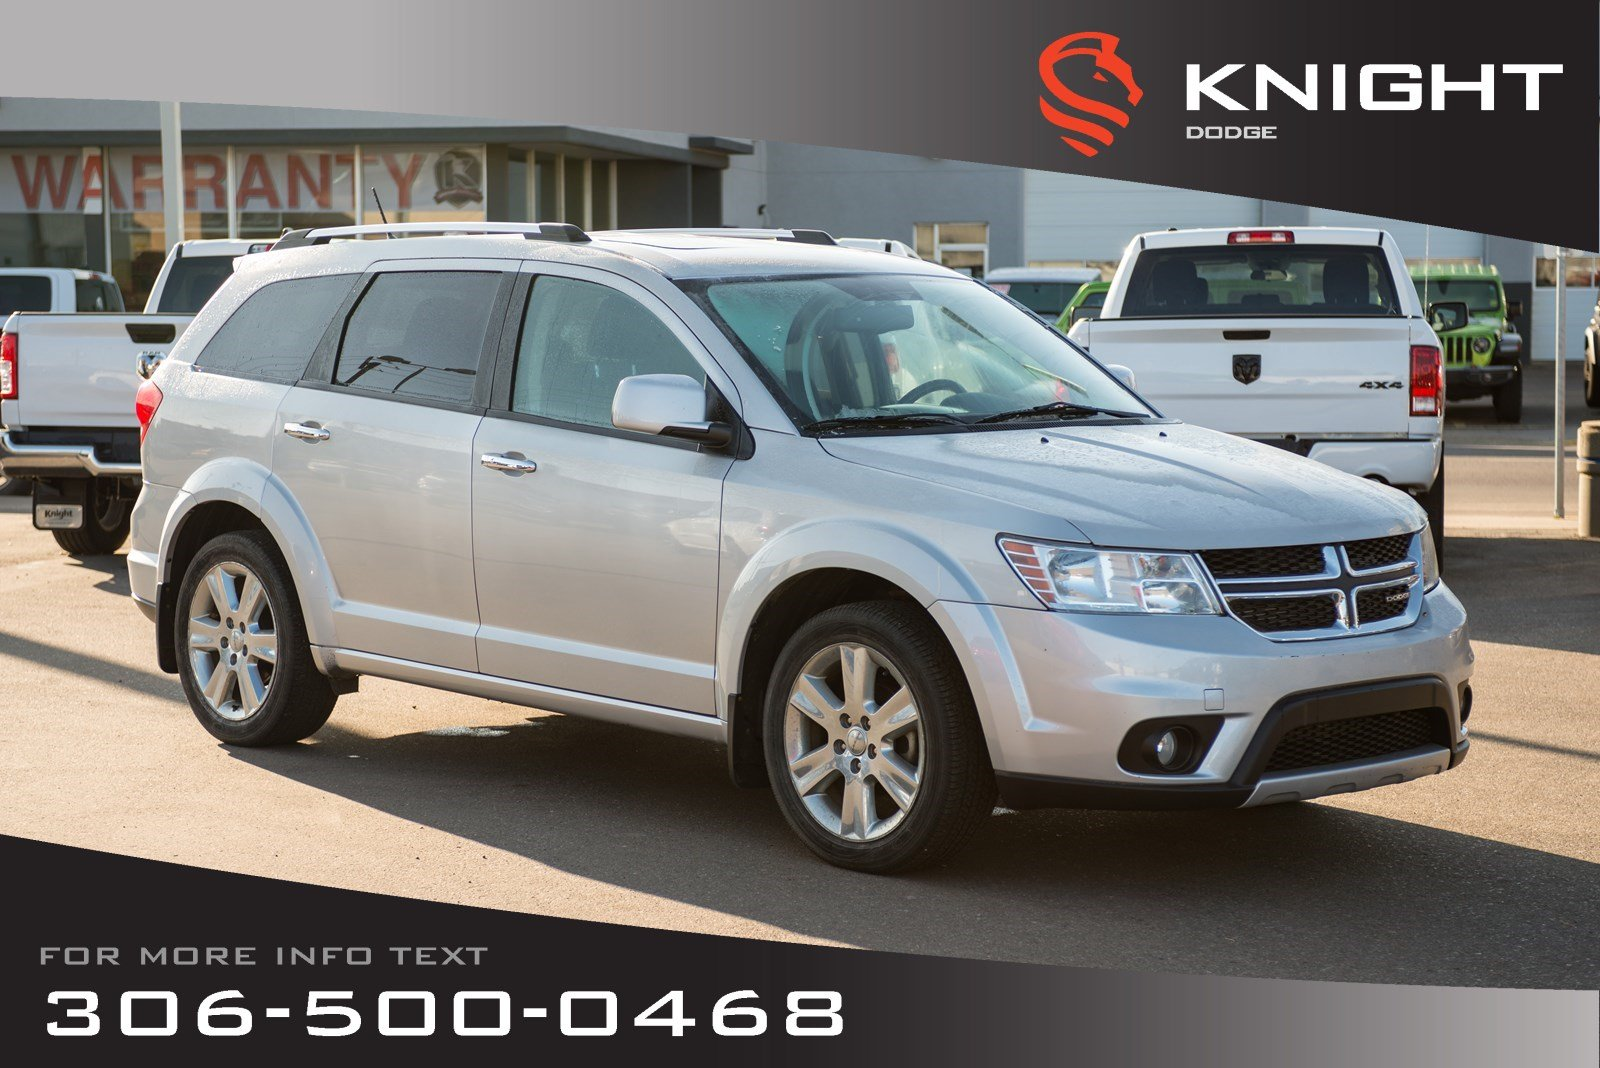 Knight Dodge Swift Current >> Used 2011 Dodge Journey R T Leather Heated Seats Remote Start Station Wagon